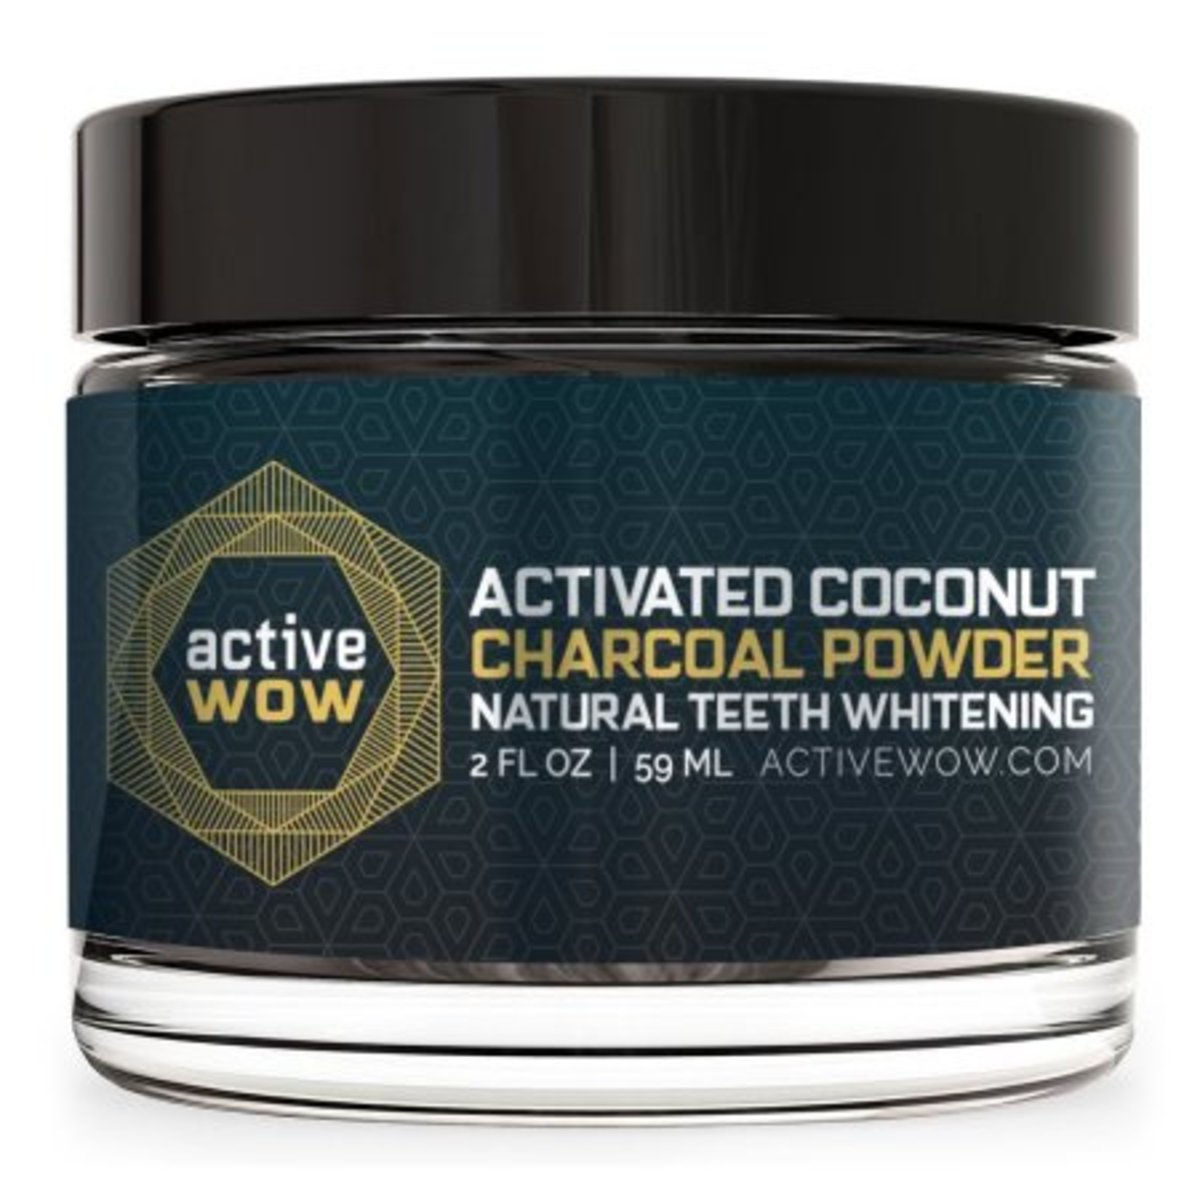 3 Natural and Non-Toxic Products for Your Pearliest Whites